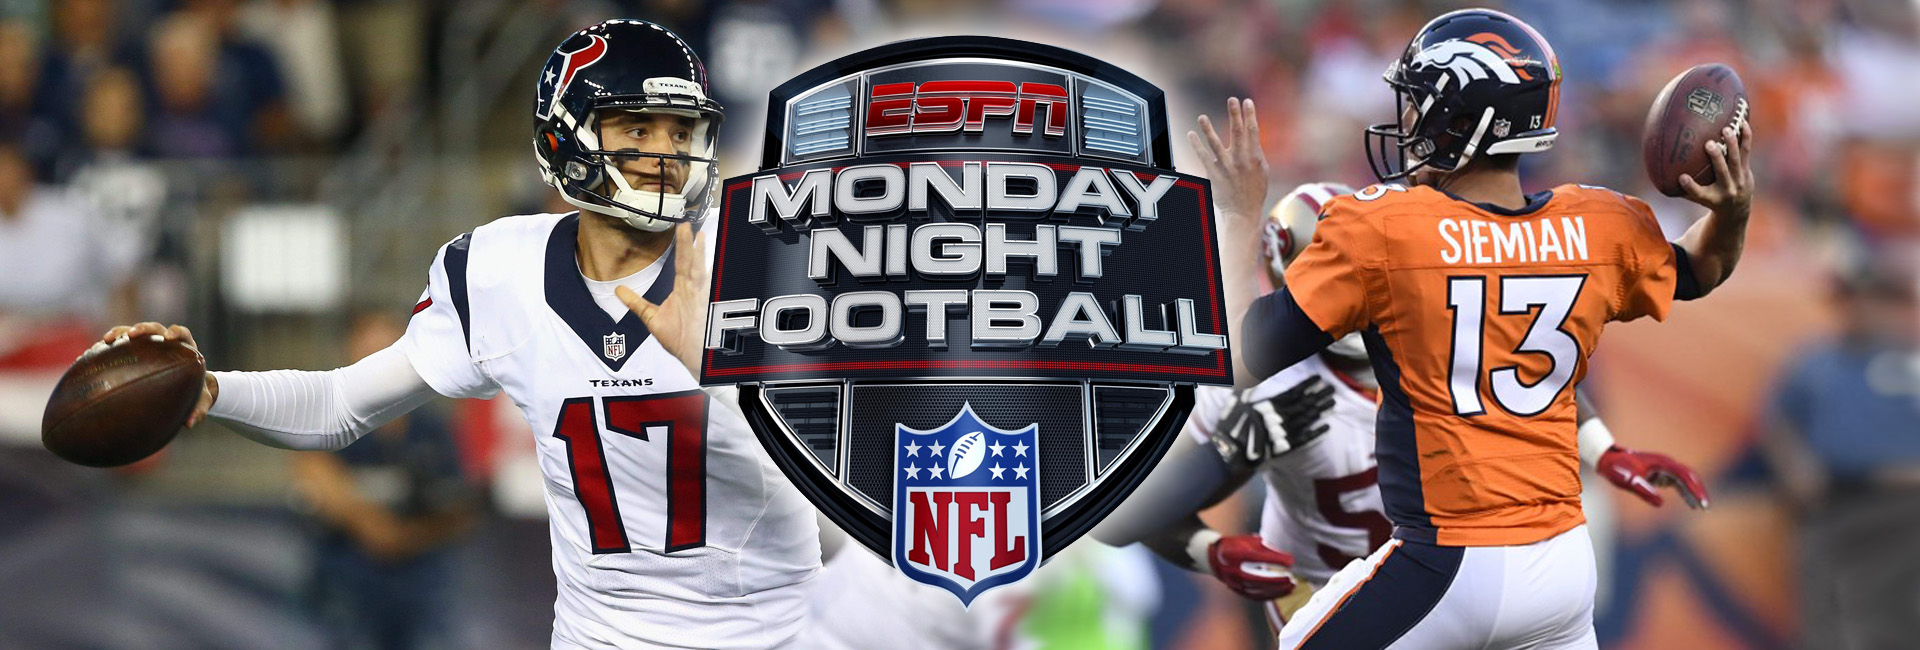 Monday Night Football Preview: Texans vs. Broncos